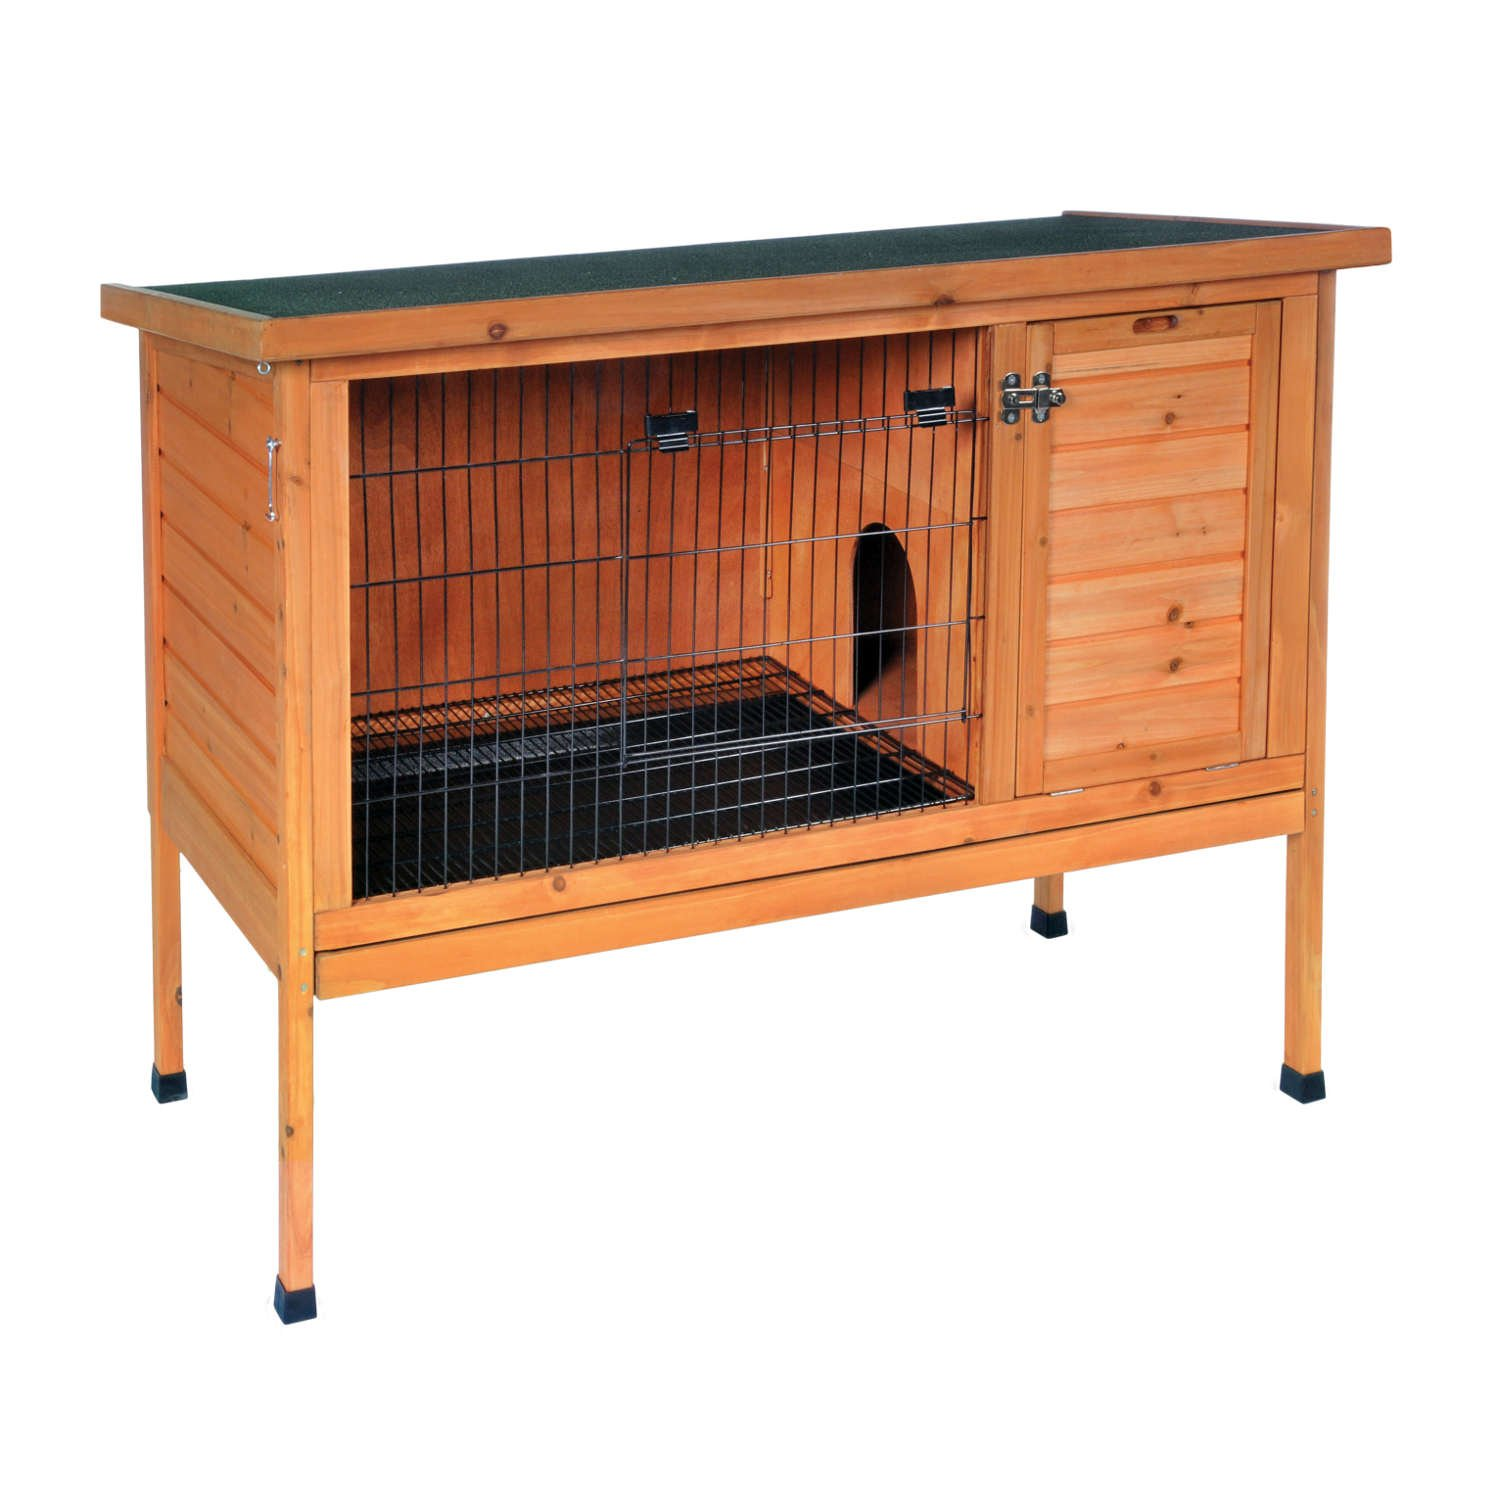 Prevue Hendryx Rabbit Hutch